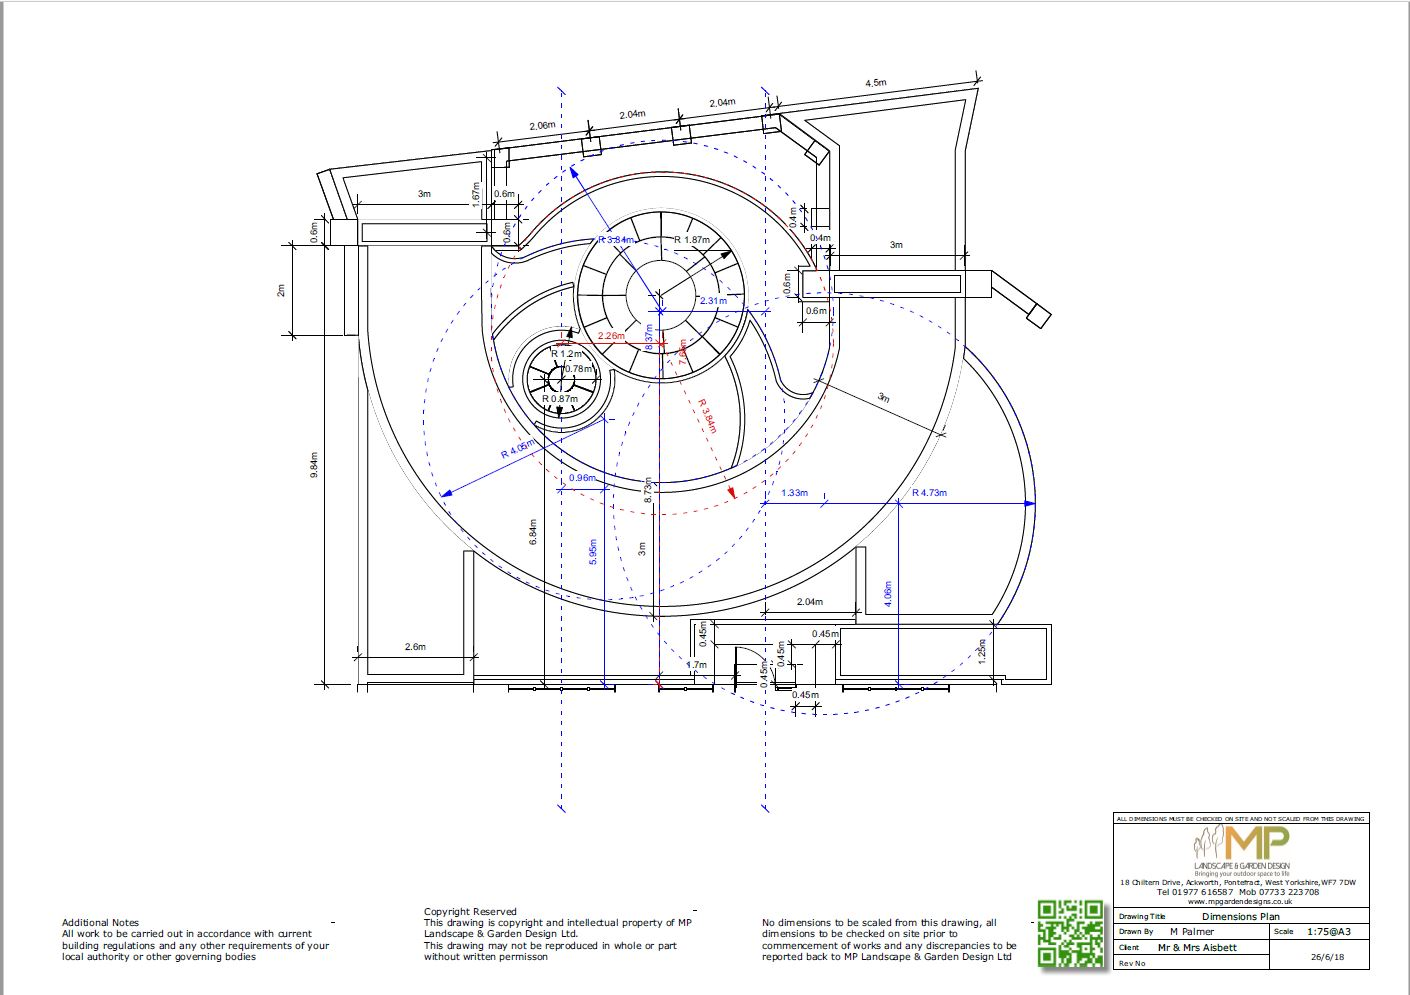 Font garden layout dimensions plans for a prperty in Notton, Wakefield